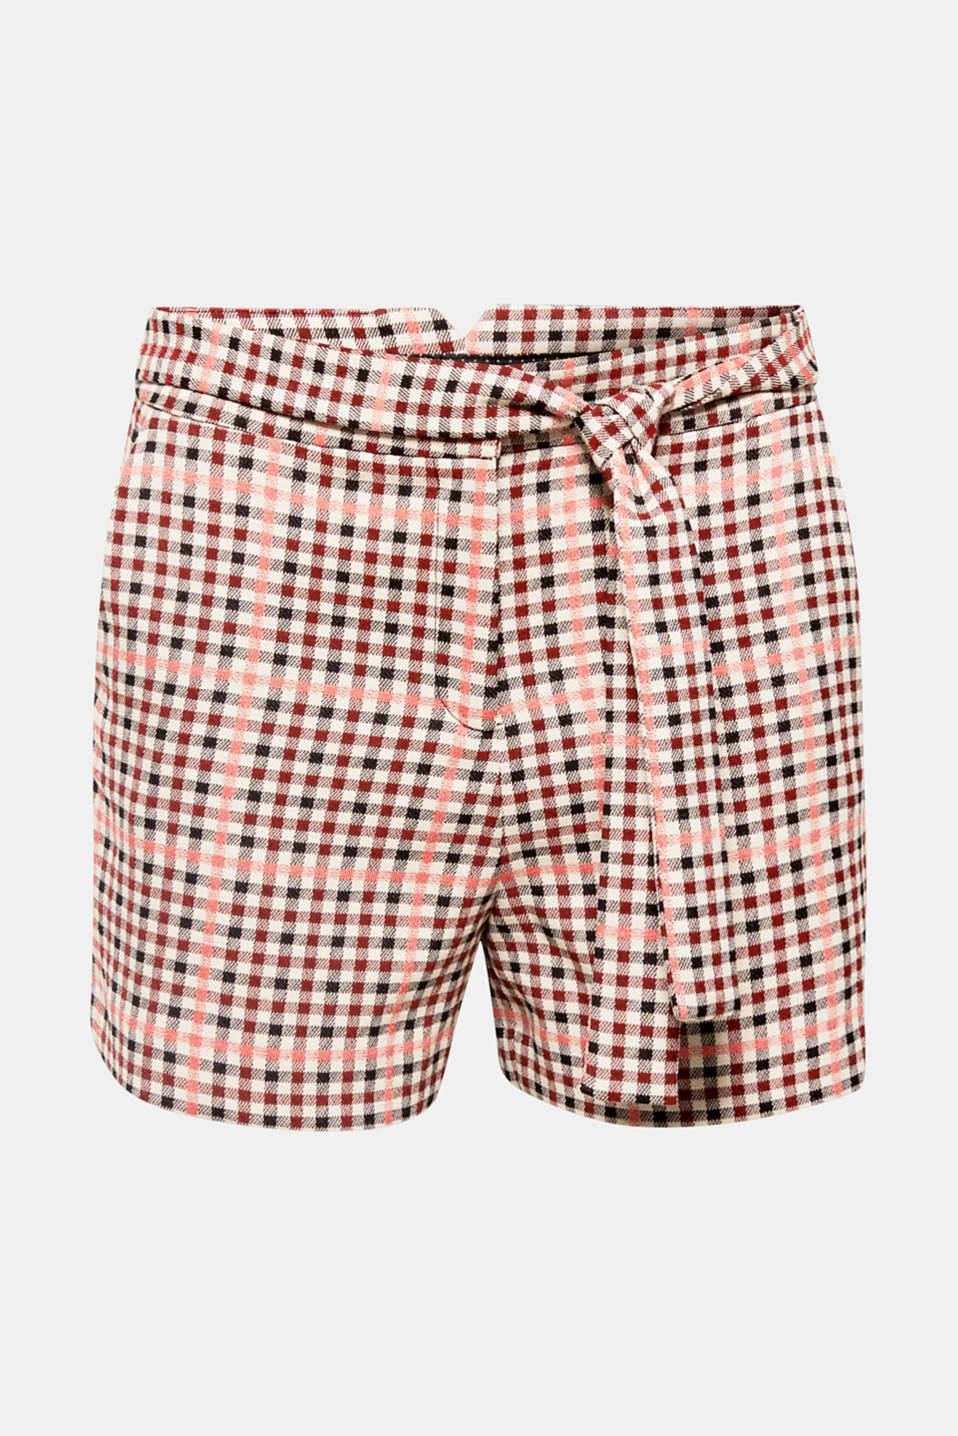 Made from lightly textured fabric with a percentage of stretch, with a fixed tie-around belt and small checks in a new colour palette that give these shorts their cheeky, trendy look!